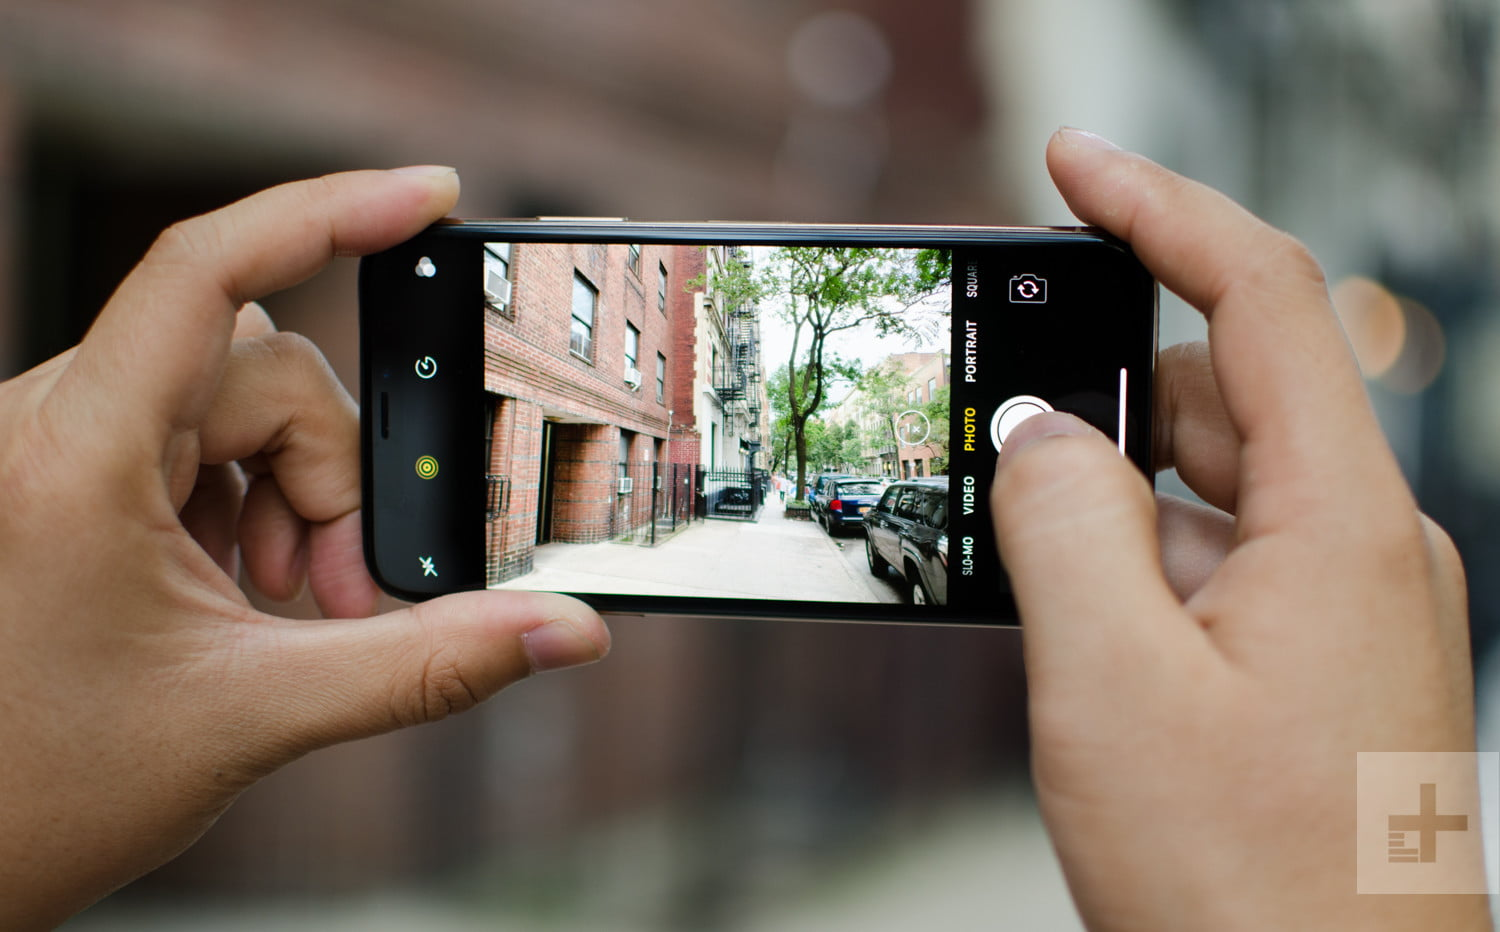 How to turn off Live Photos on an iPhone